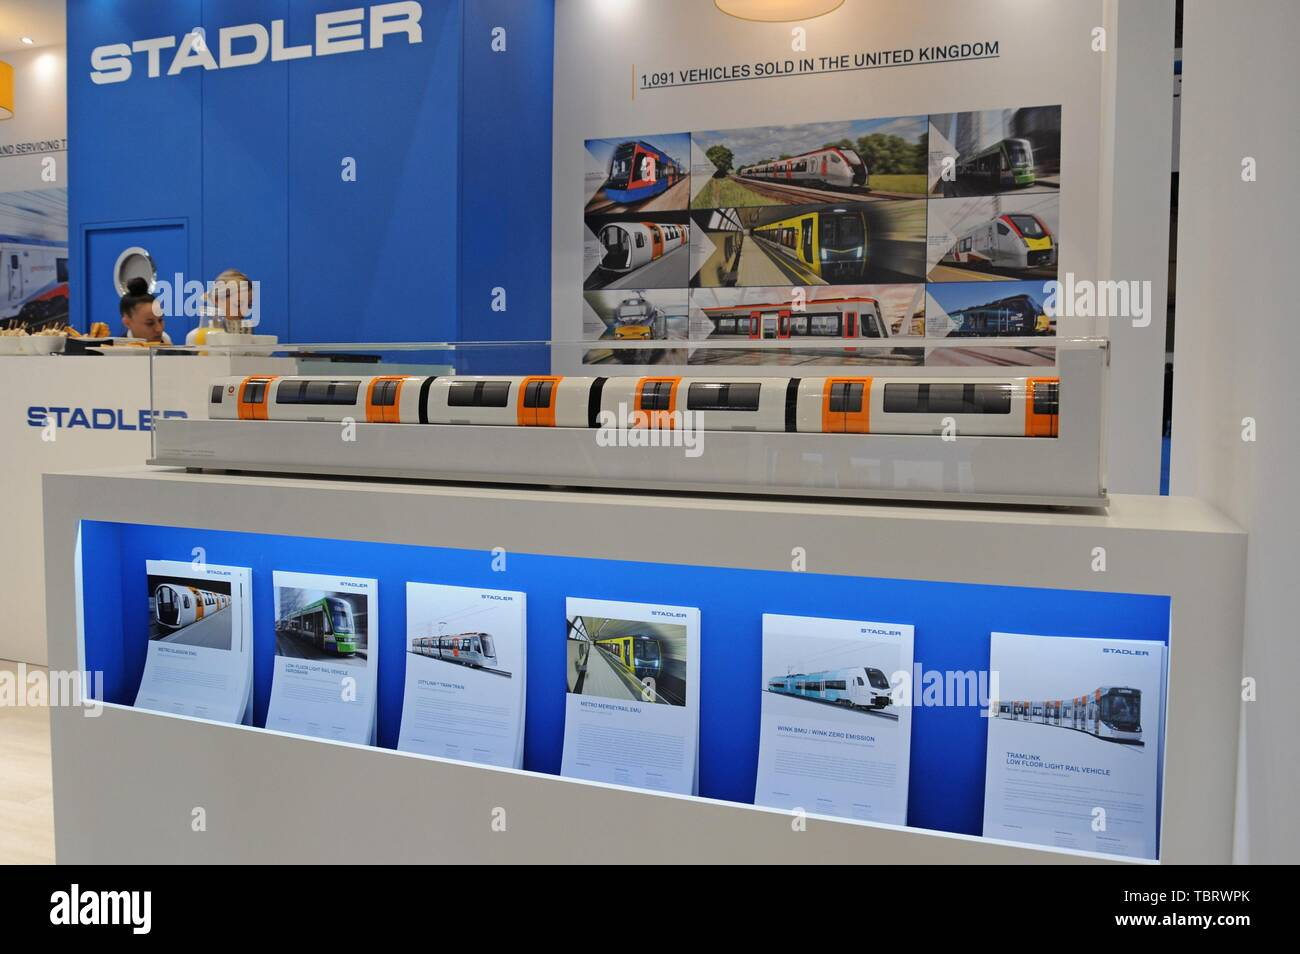 Modle of the new Glasgow subway train on the Stadler Rail stand at the RailTex Railway industry exhibition, NEC, Birmingham April 2019 - Stock Image